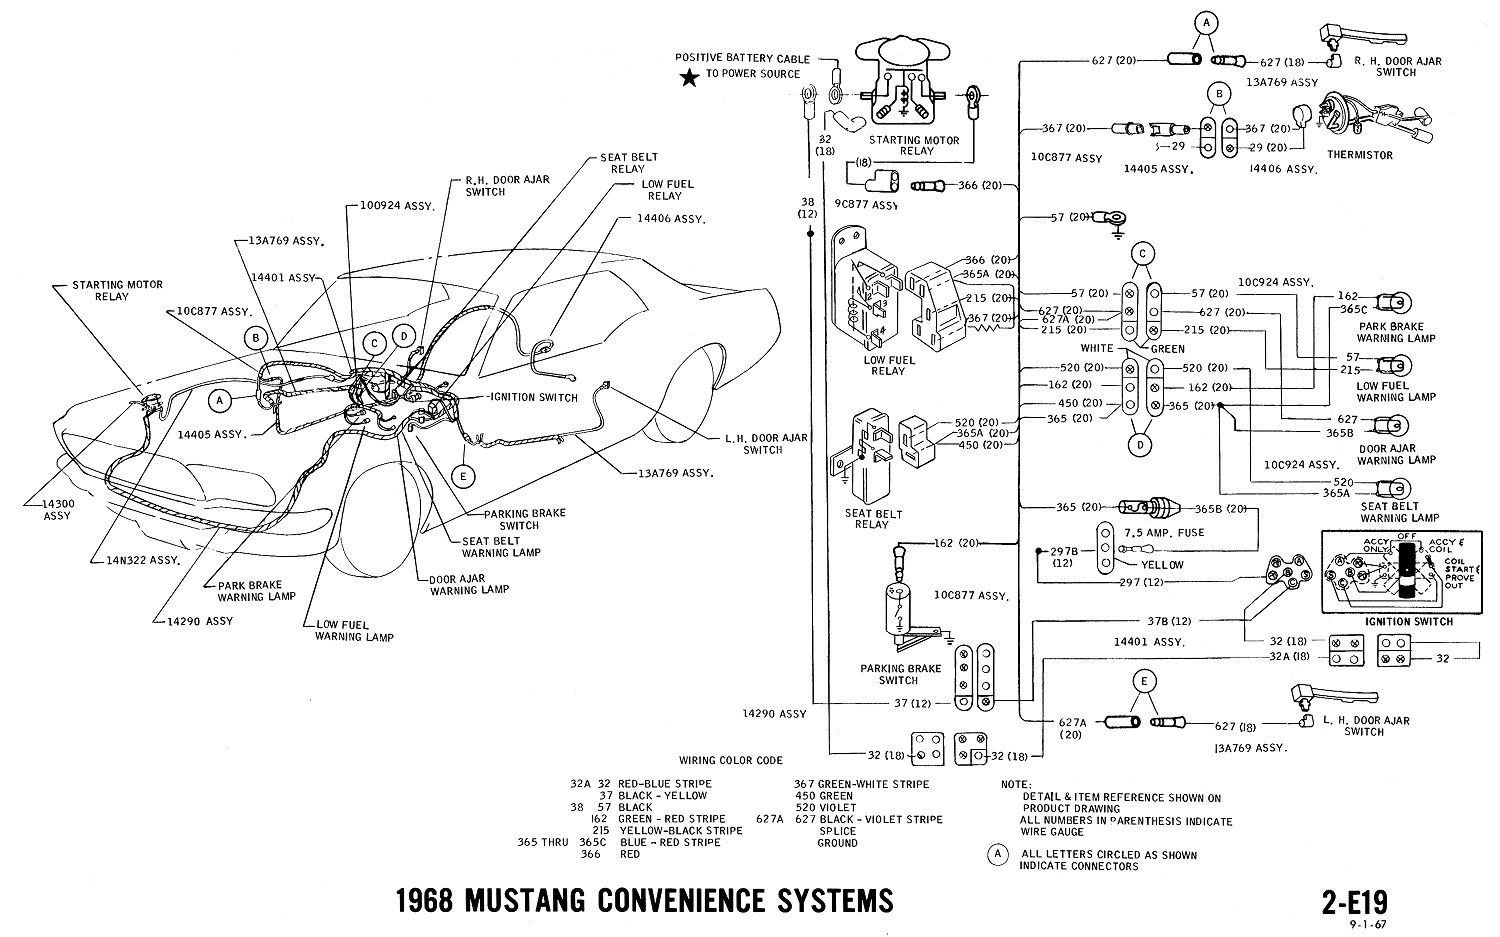 1968 mustang wiring diagram convenience systems 1968 mustang wiring diagram manual 68 mustang ignition wiring 65 mustang dash wiring diagram at bayanpartner.co